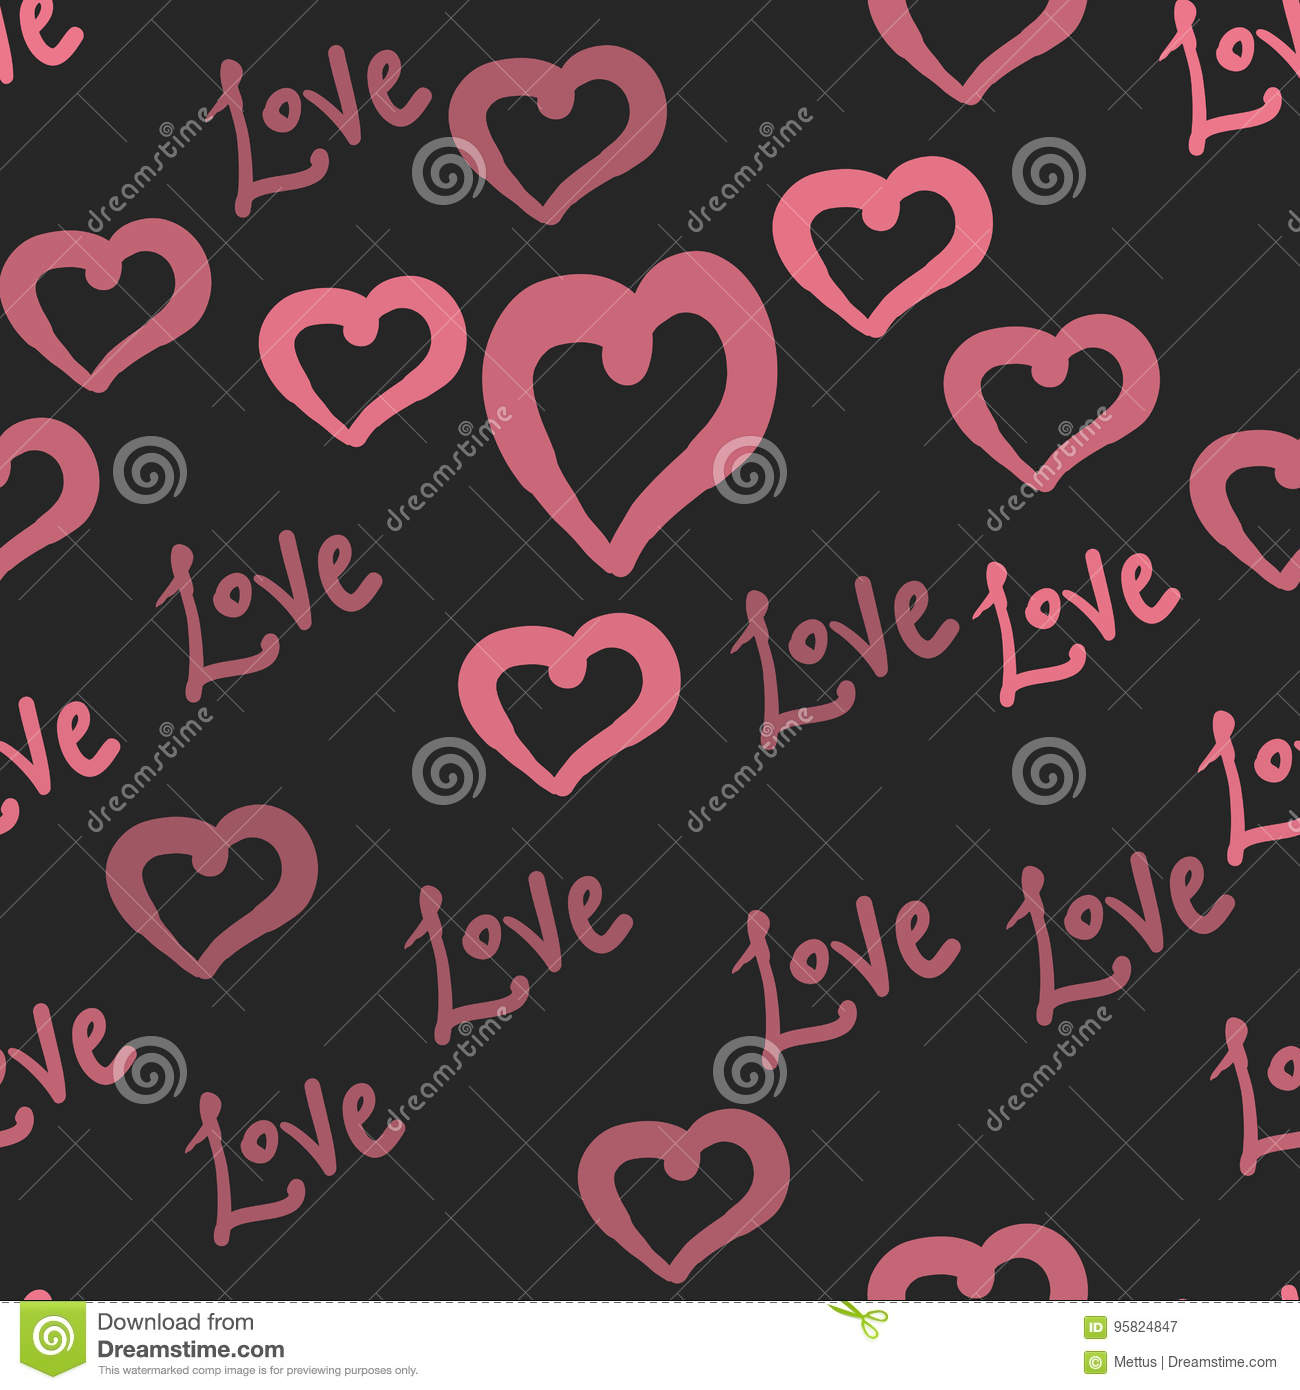 Love Tile In Pink Hearts Valentine`s Day Seamless Pattern